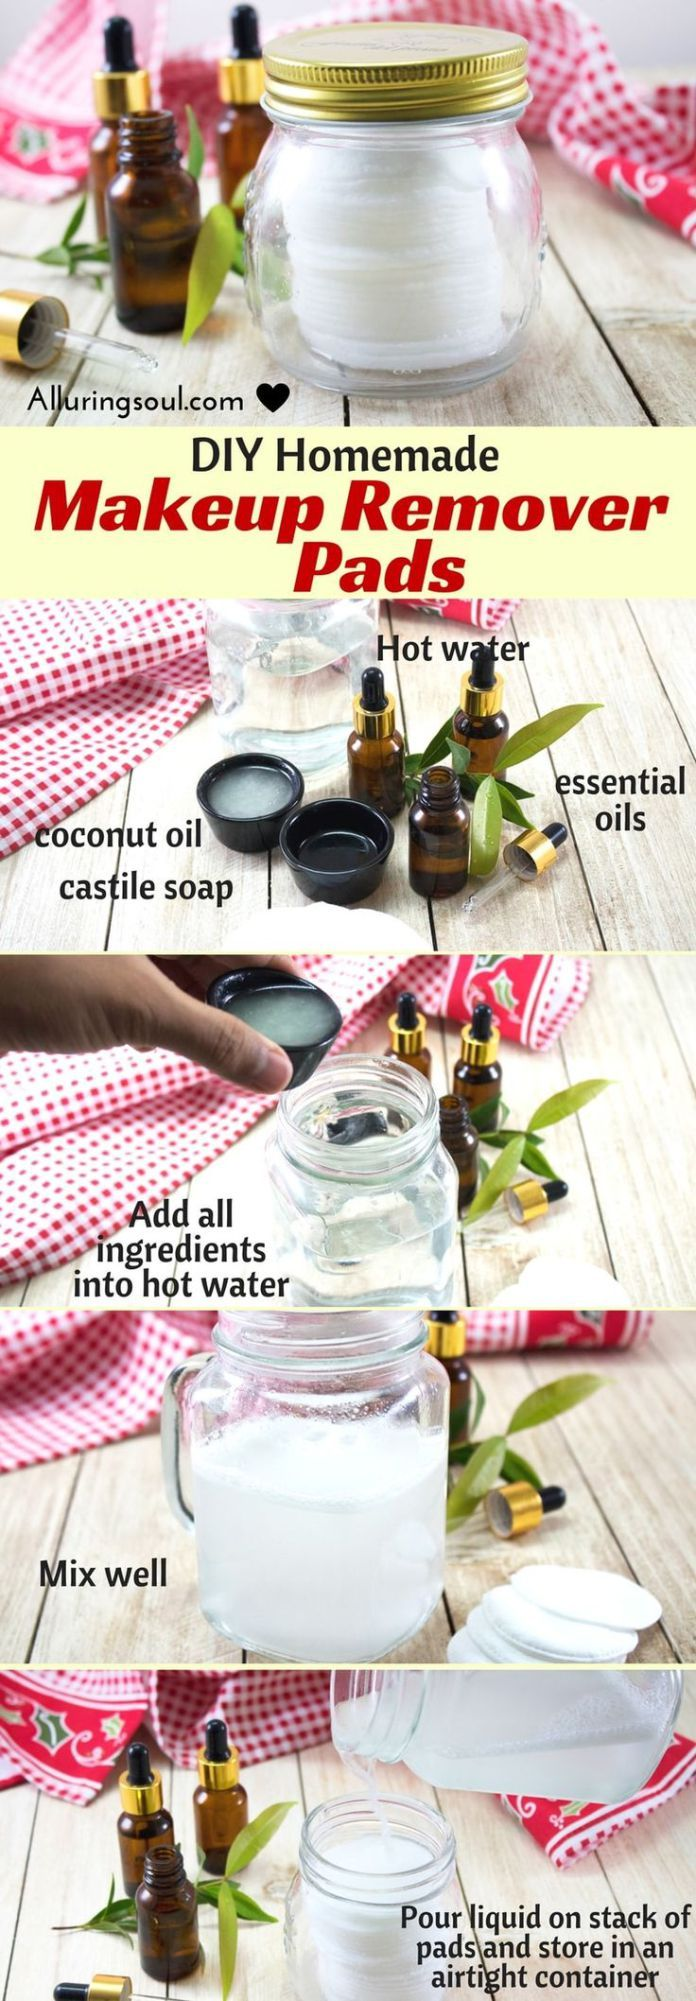 Natural & DIY Skin Care DIY makeup remover will help to